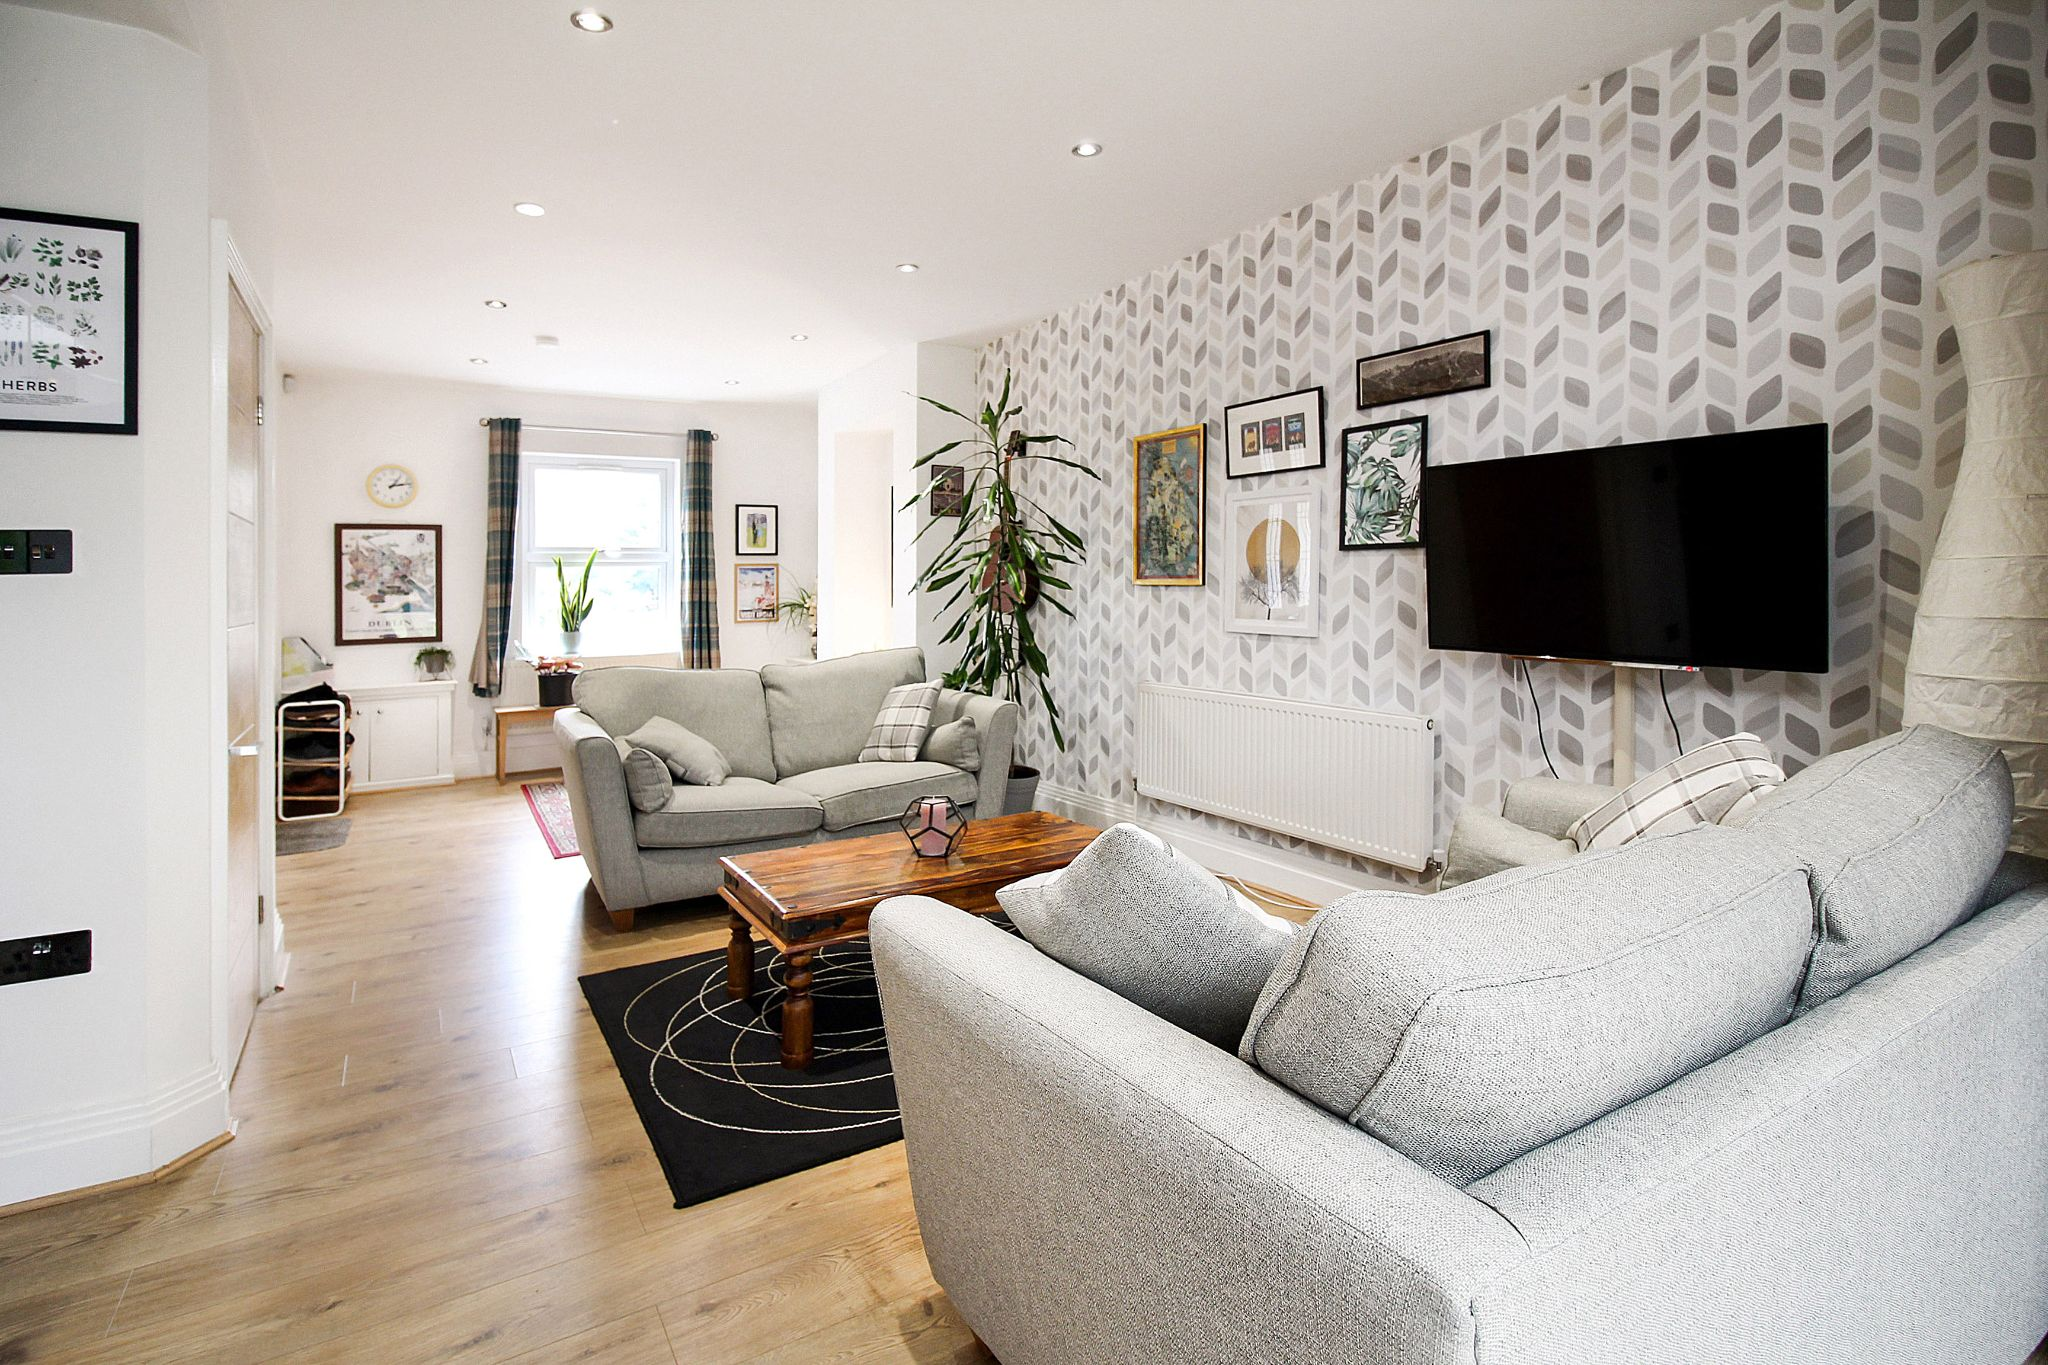 2 bedroom end terraced house For Sale in Solihull - Photograph 3.